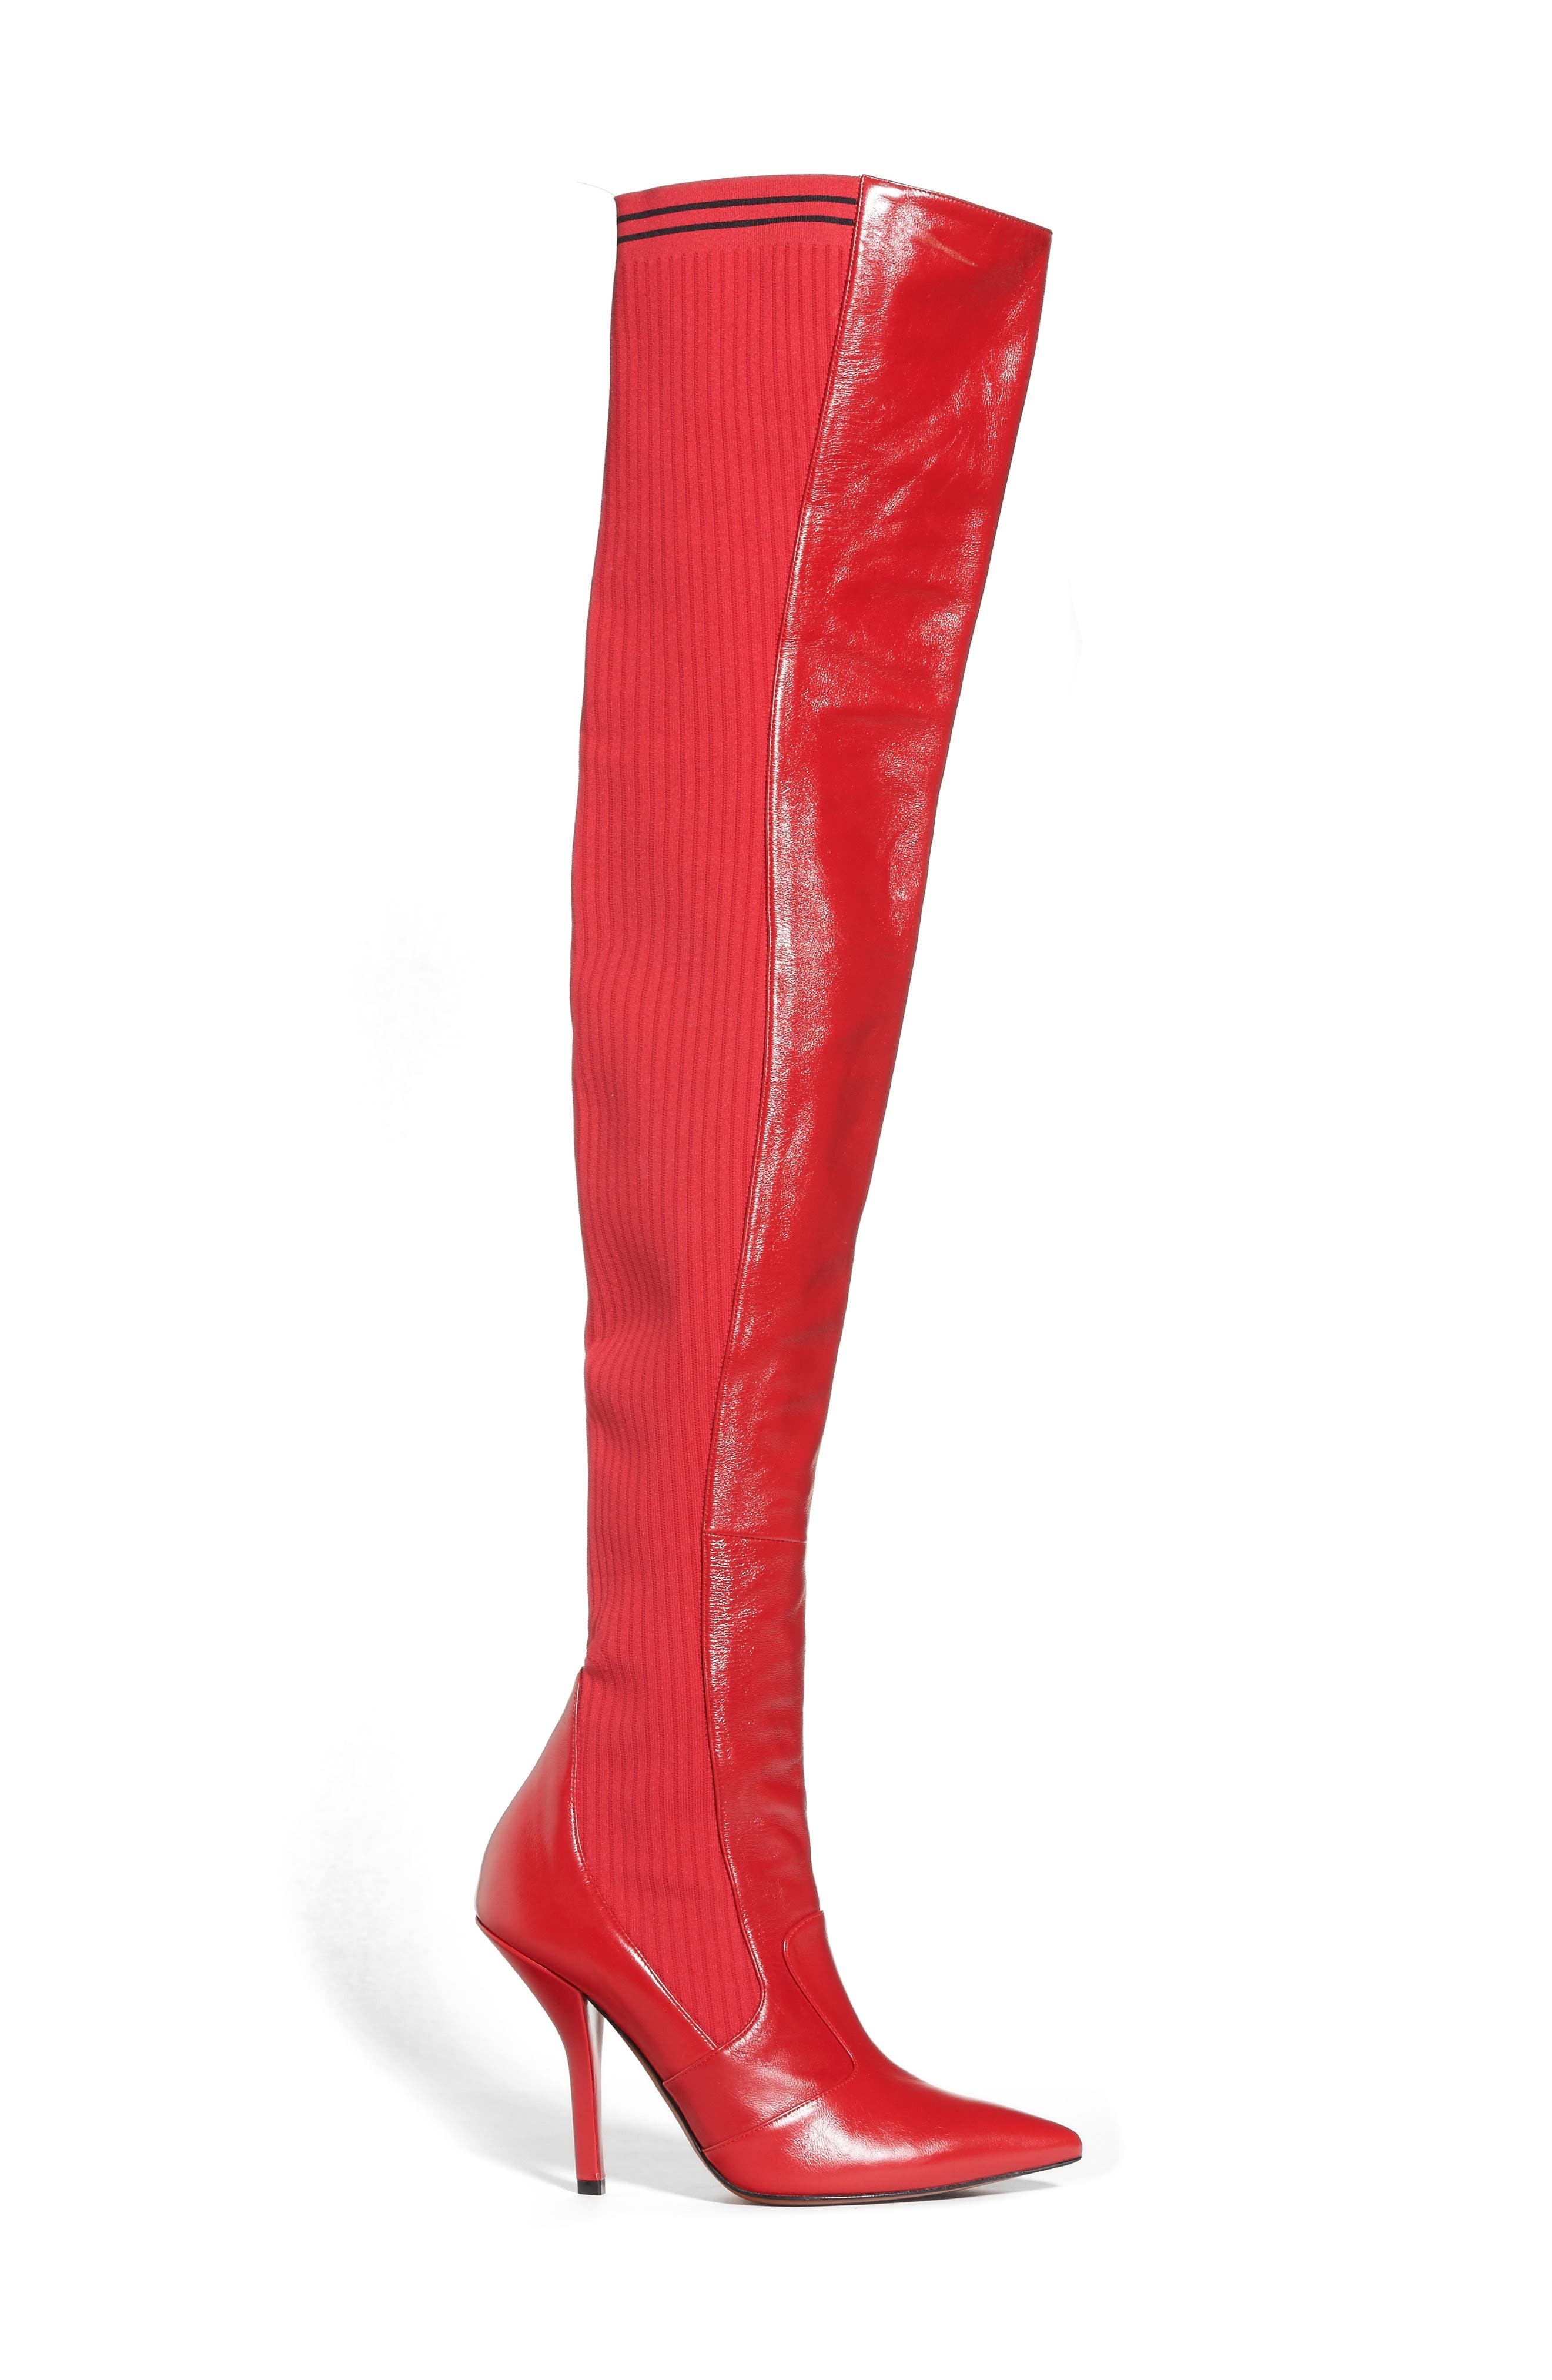 Rockoko Over the Knee Boot,                             Alternate thumbnail 4, color,                             Cherry Leather